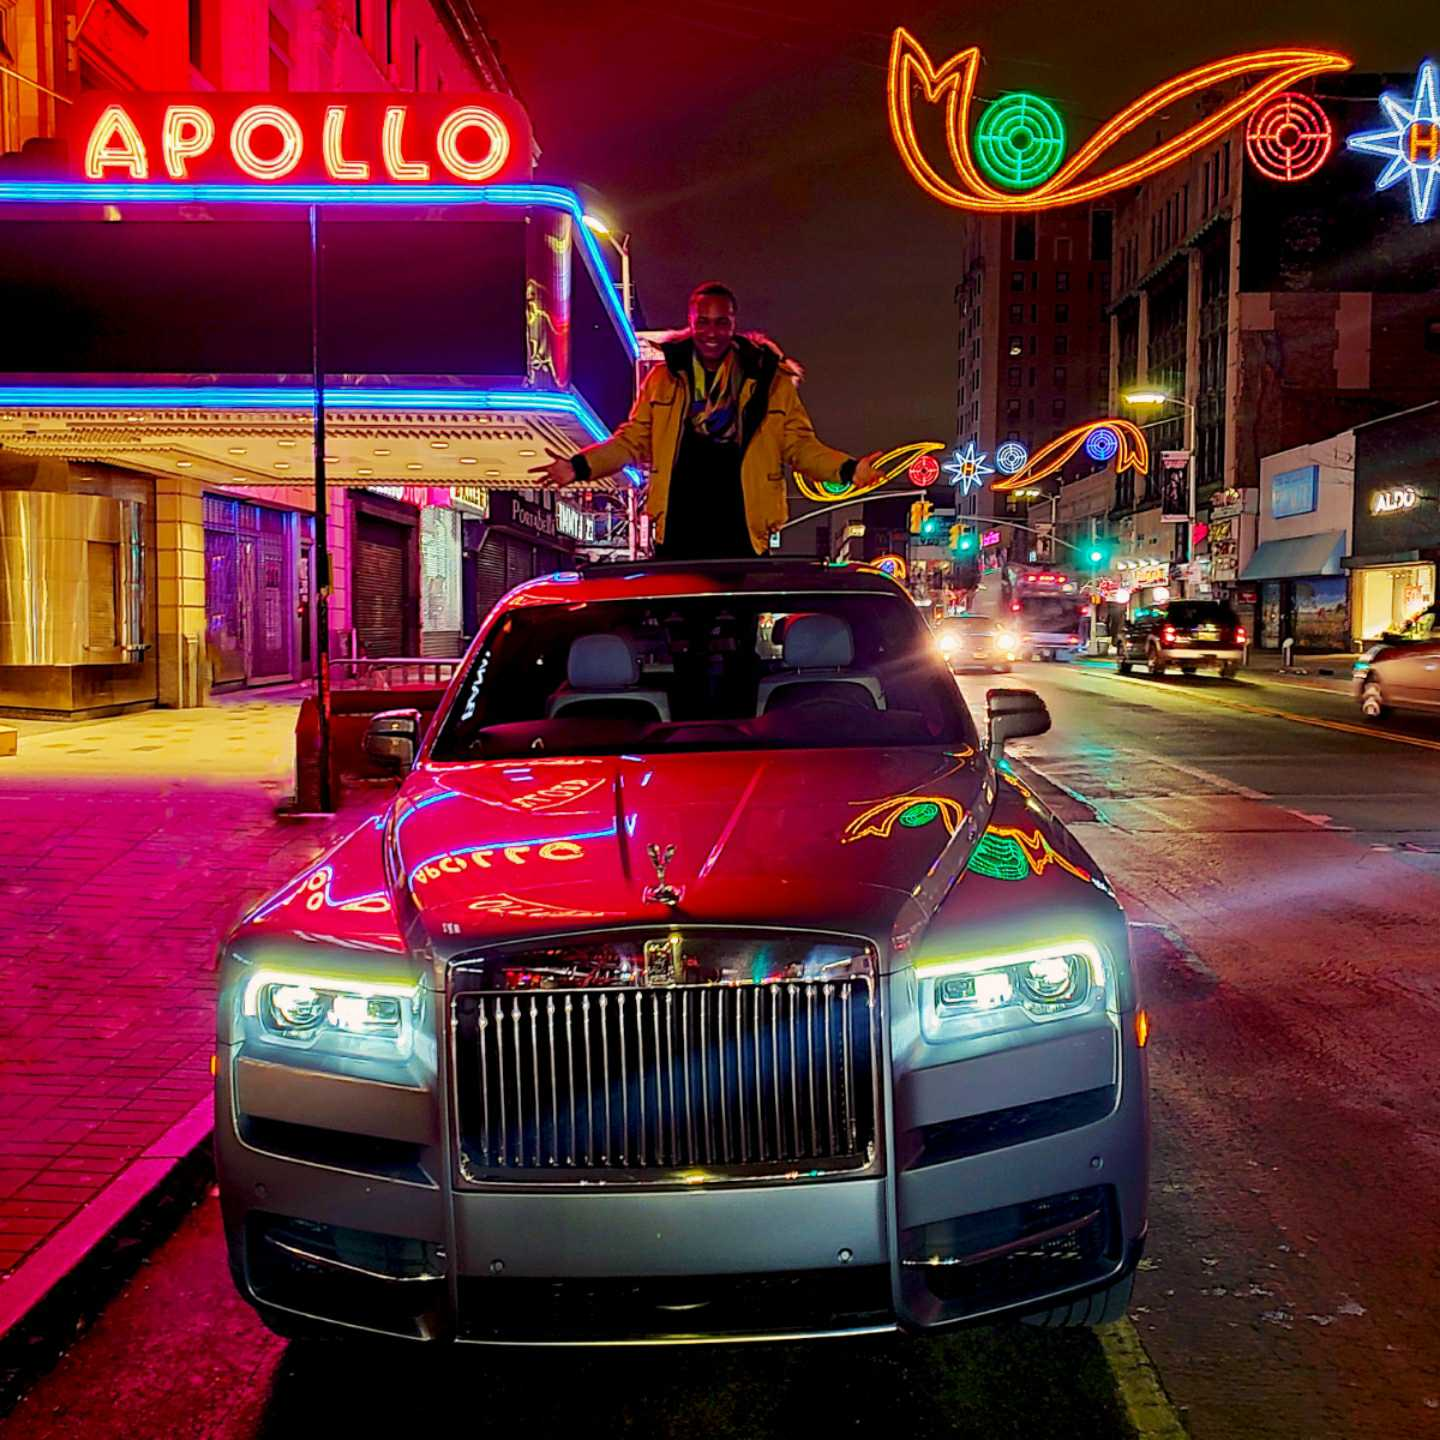 Vaughn Lowery, 360 MAGAZINE, NYC, Harlem, apollo theater, Rolls-Royce, cullinan, luxury, bespoke, style, fashion, holiday season